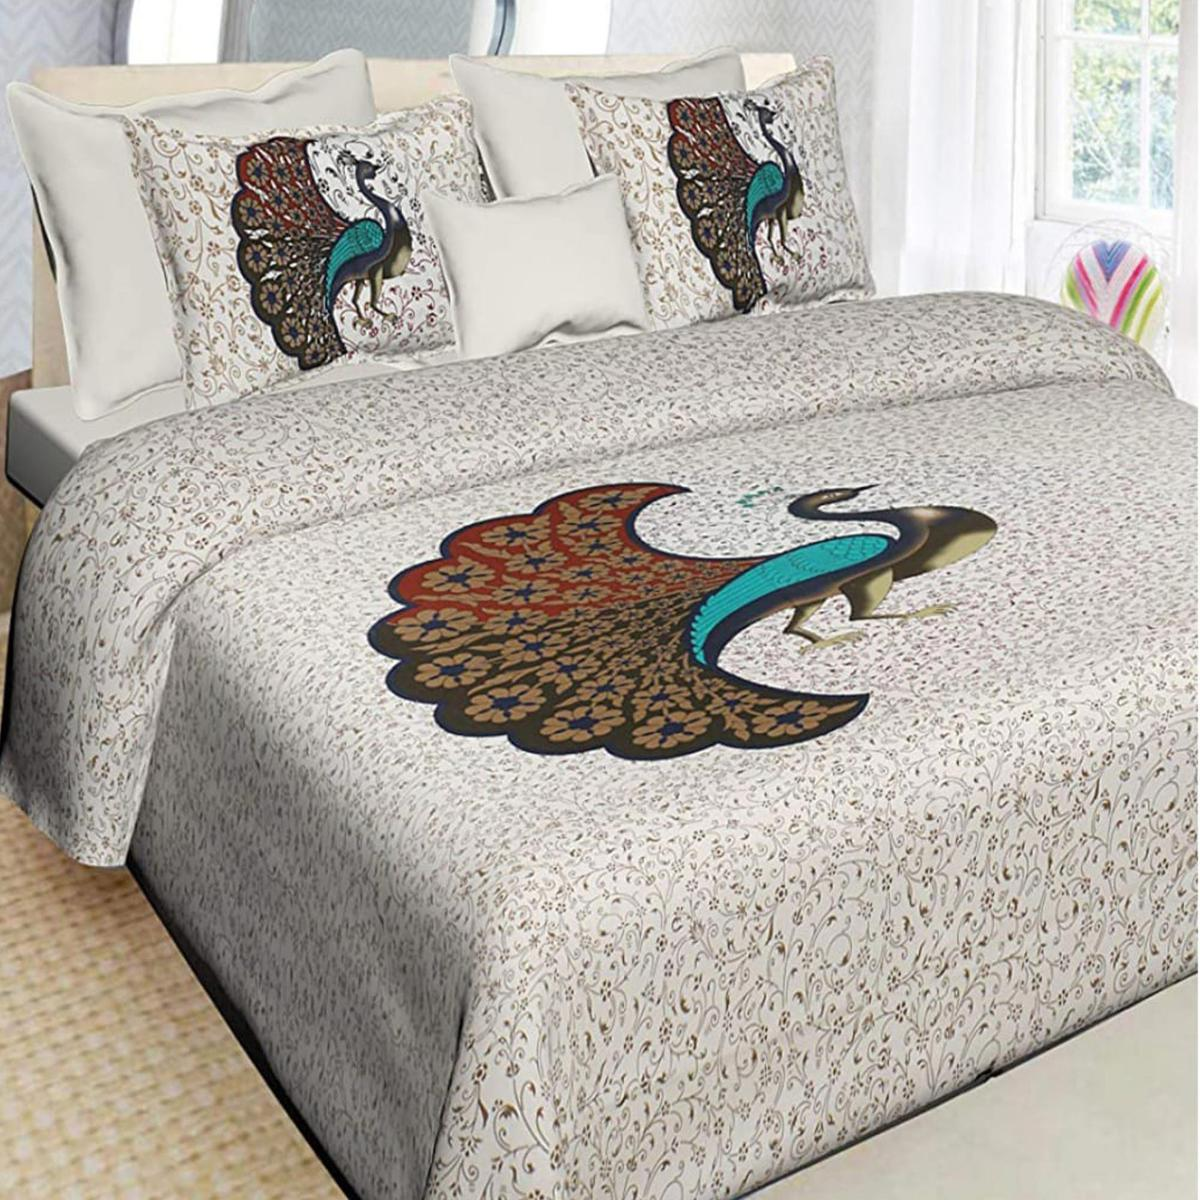 Radiant Multi-White Colored Printed Cotton Double Bedsheet with 2 Pillow Cover